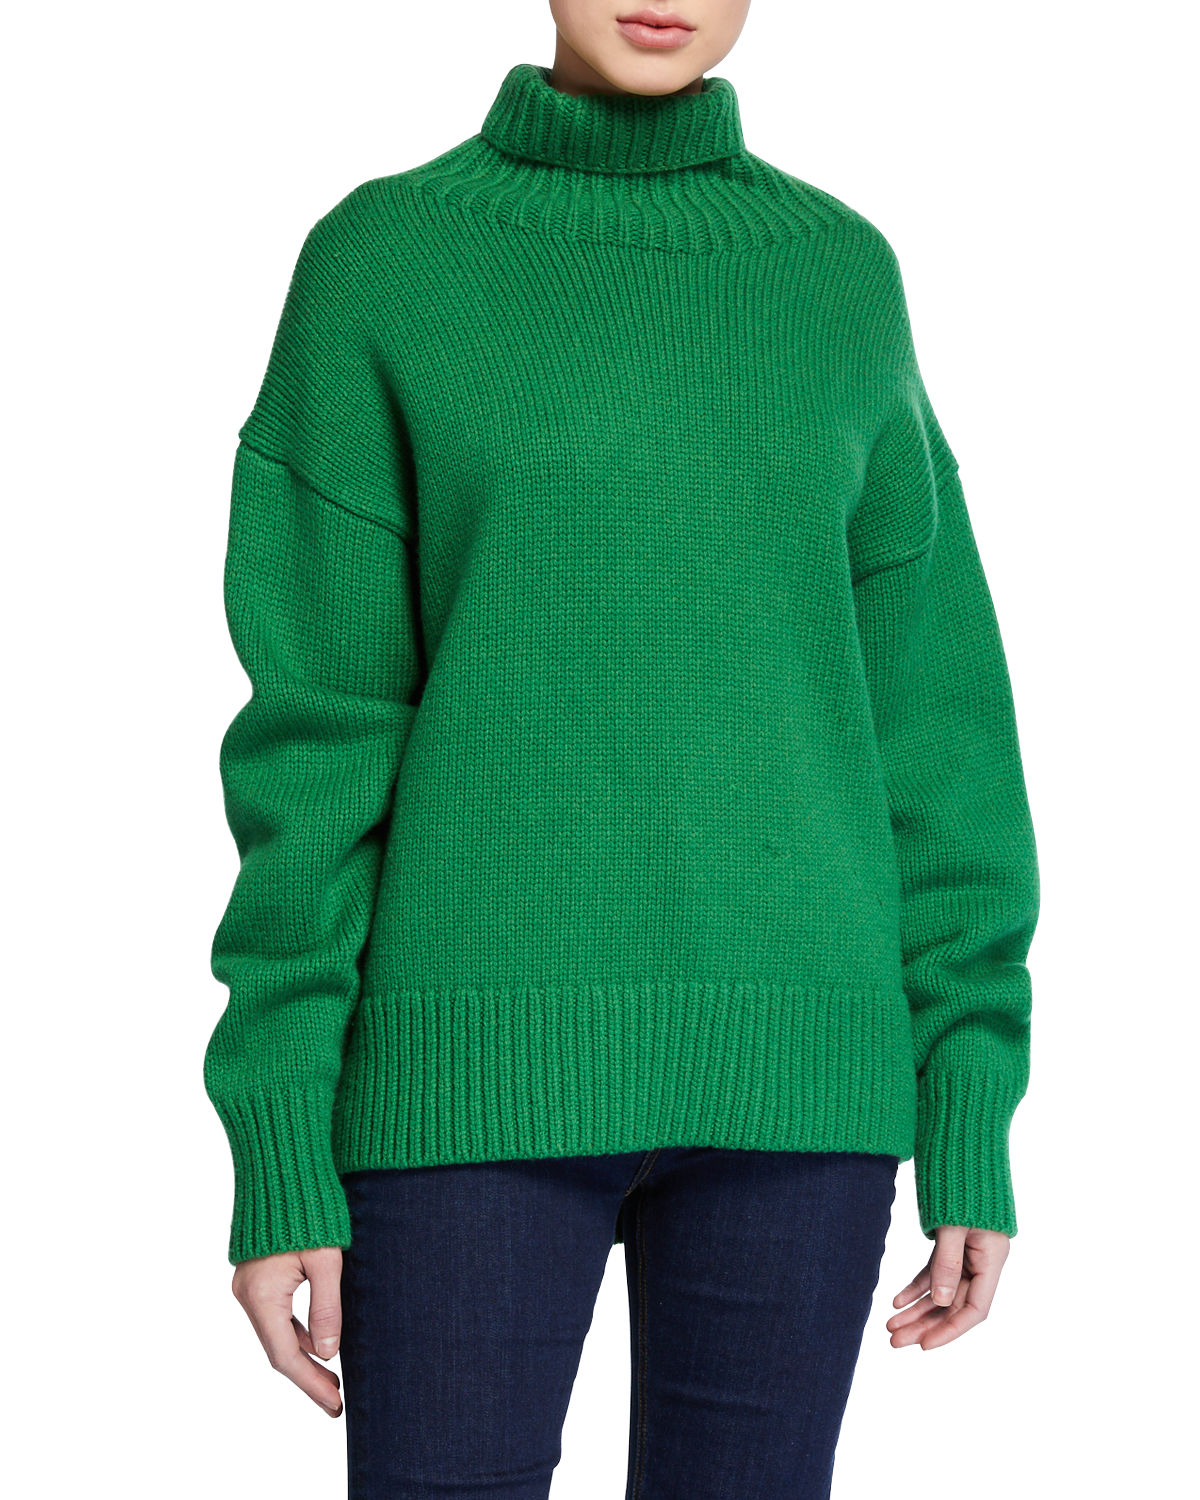 Rag & Bone Sweaters LUNET LAMBS WOOL TURTLENECK SWEATER